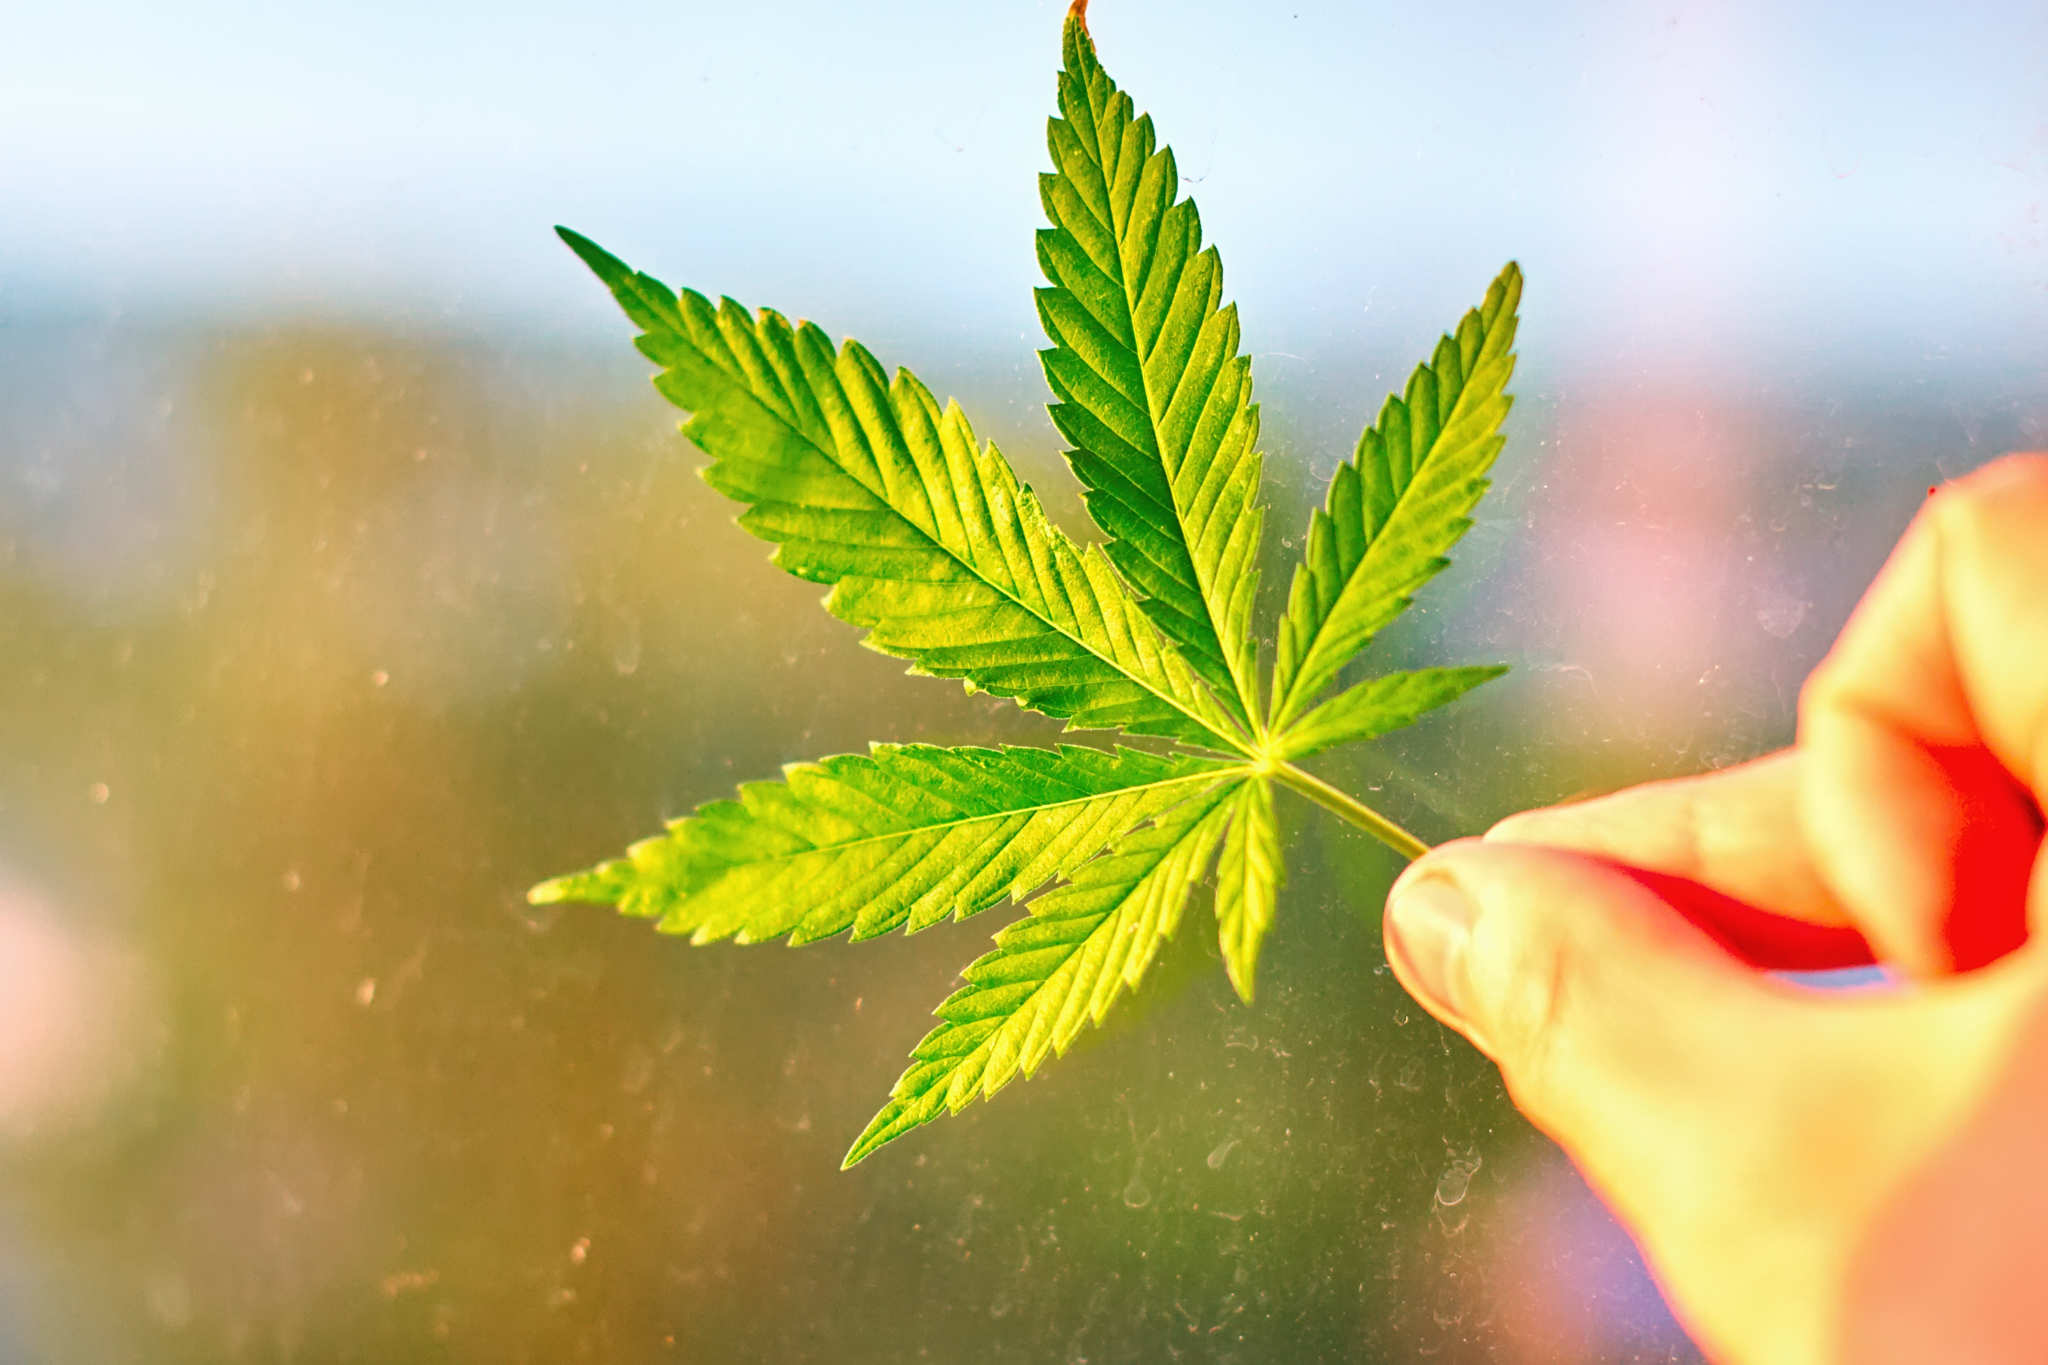 A hand holding a hemp leaf. Prejudices against hemp and all forms of cannabis are beginning to fade in the UK, with 43 percent supporting total legalization of psychoactive cannabis (